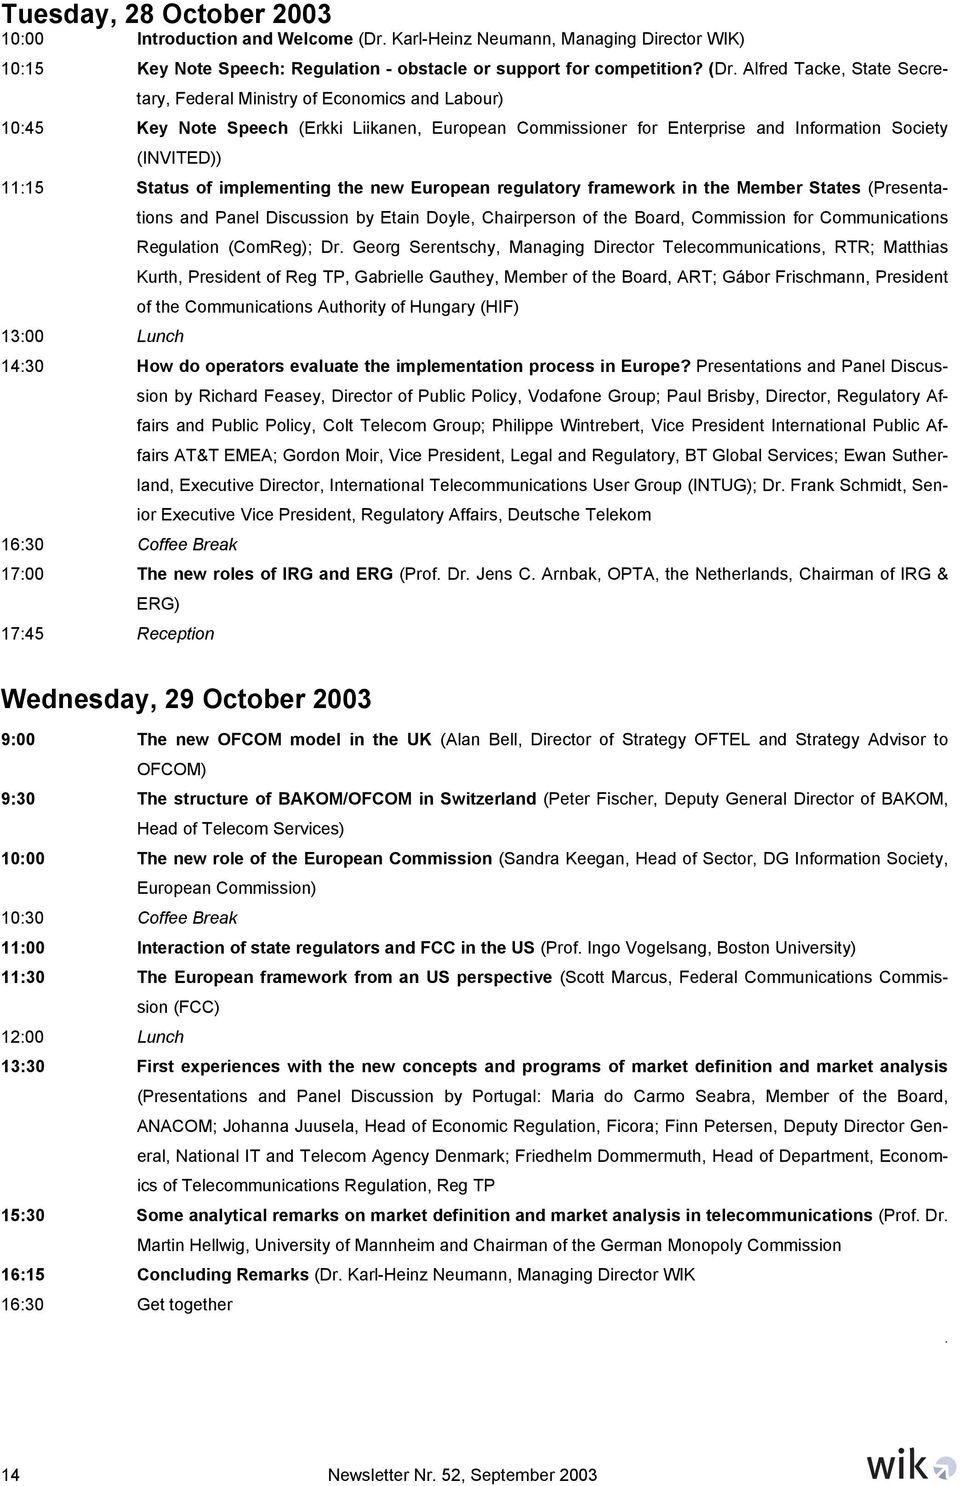 Alfred Tacke, State Secretary, Federal Ministry of Economics and Labour) 10:45 Key Note Speech (Erkki Liikanen, European Commissioner for Enterprise and Information Society (INVITED)) 11:15 Status of